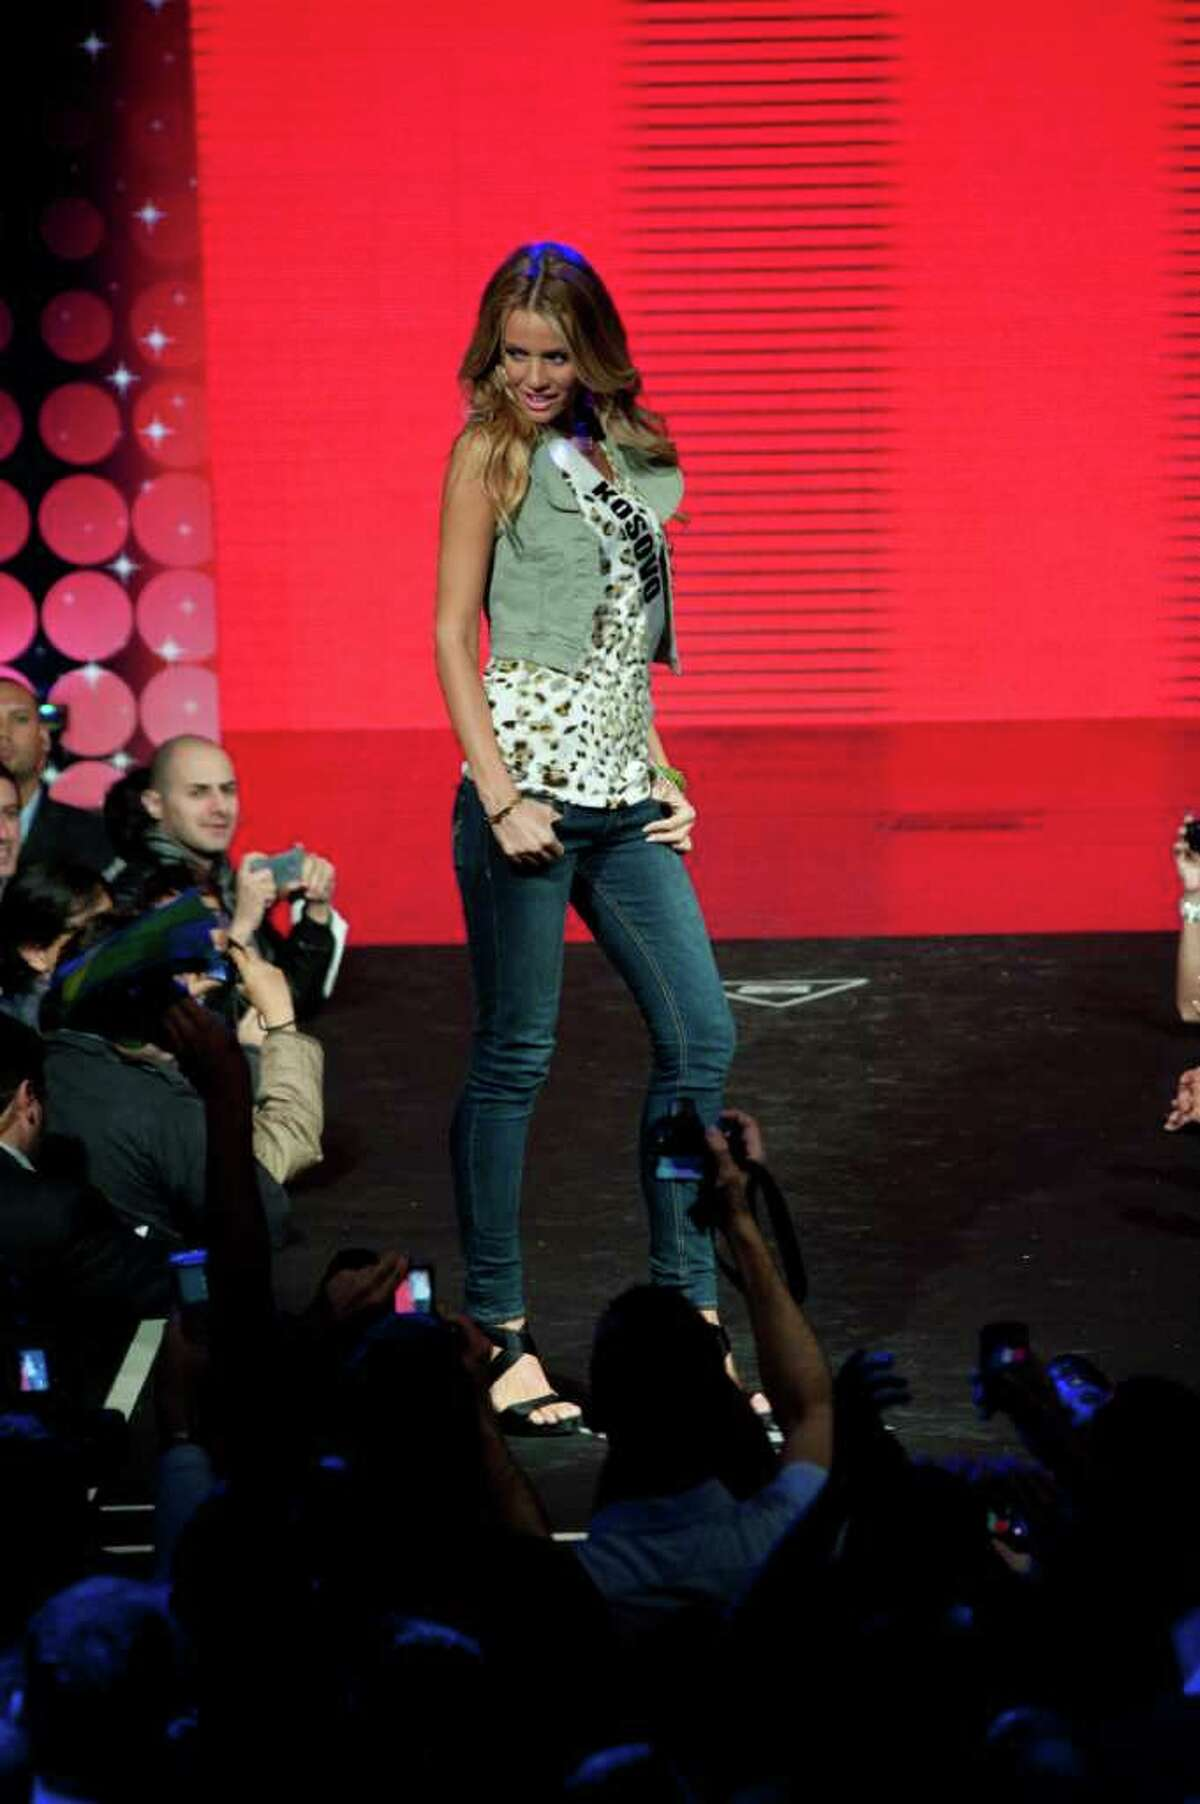 Miss Kosovo 2011, Aferdita Dreshaj, walks the runway during a fashion show at The Week nightclub in Sao Paulo, Brazil on Saturday, Sept. 3, 2011. The 2011 Miss Universe competition is scheduled to be held on Sept. 12. (AP Photo/Miss Universe Organization, Patrick Prather)